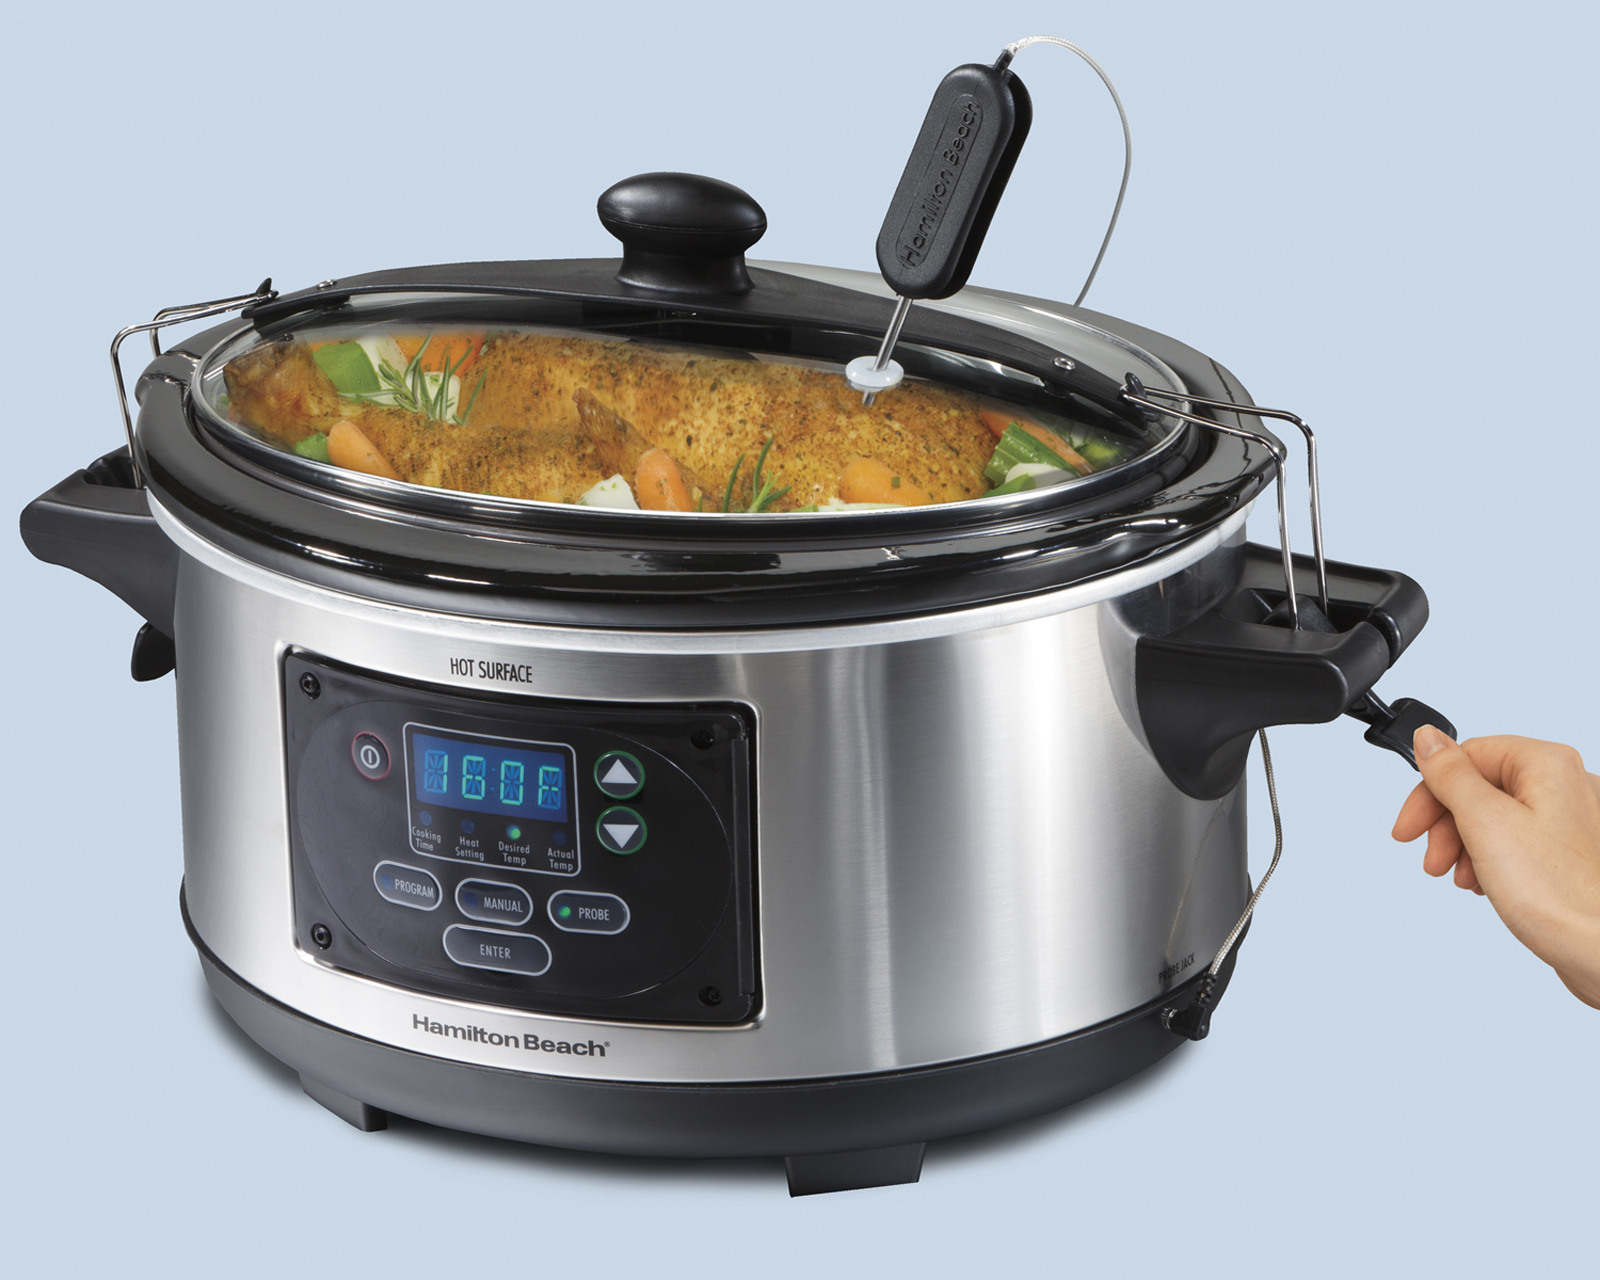 Hamilton Beach Set n Forget® 6 qt. Programmable Slow Cooker